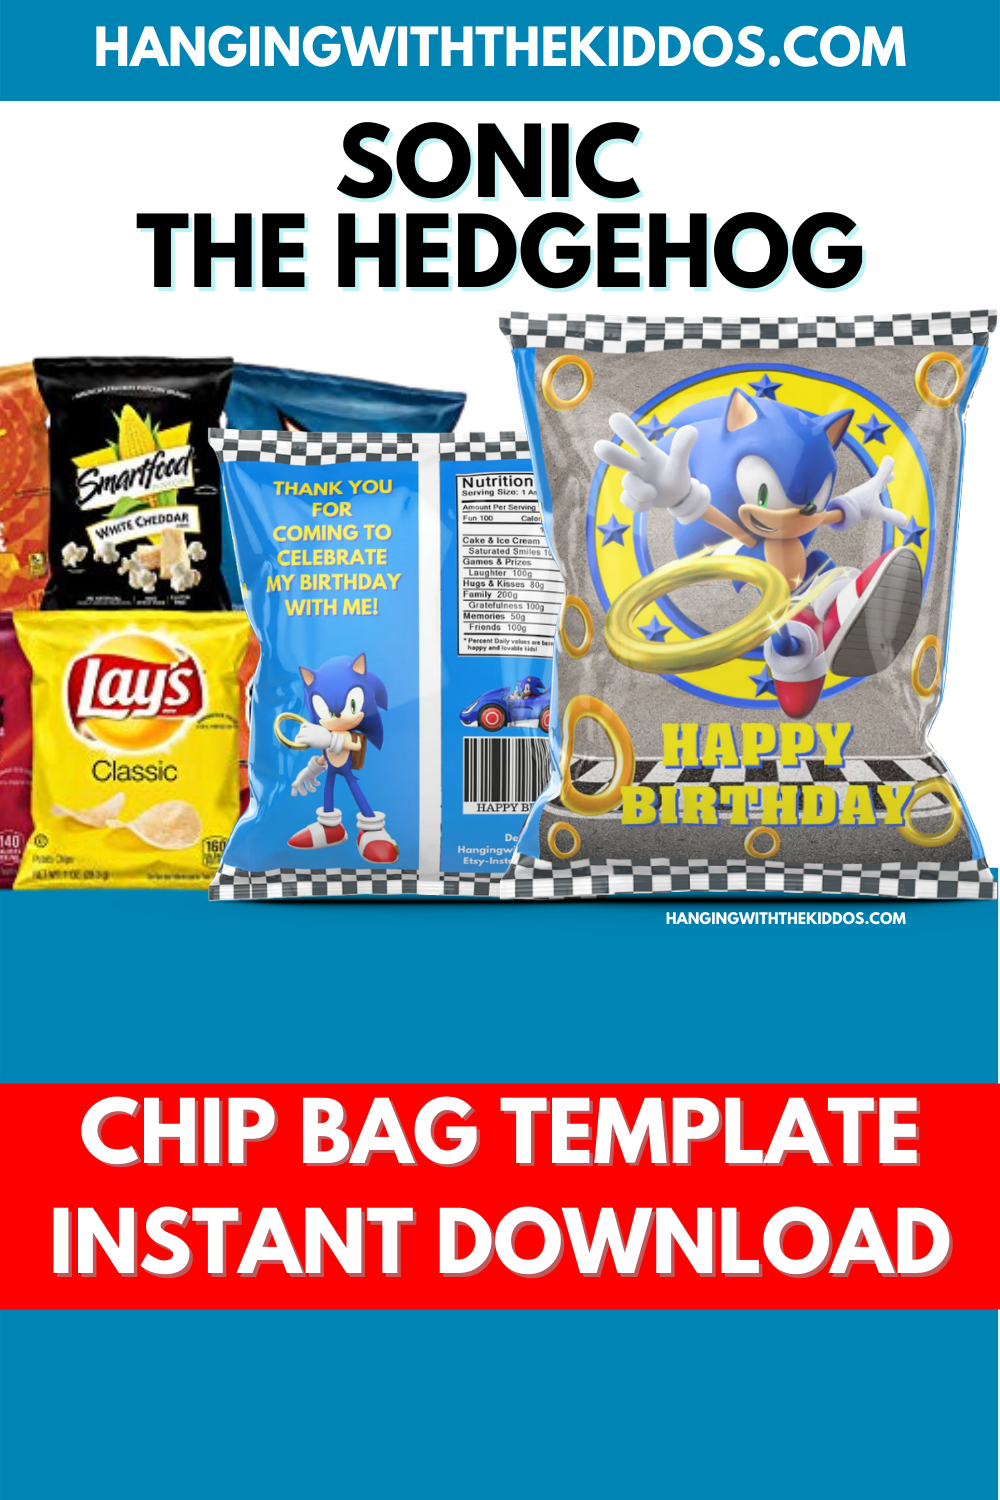 Sonic The Hedgehog Party Favor Chip Bag Template